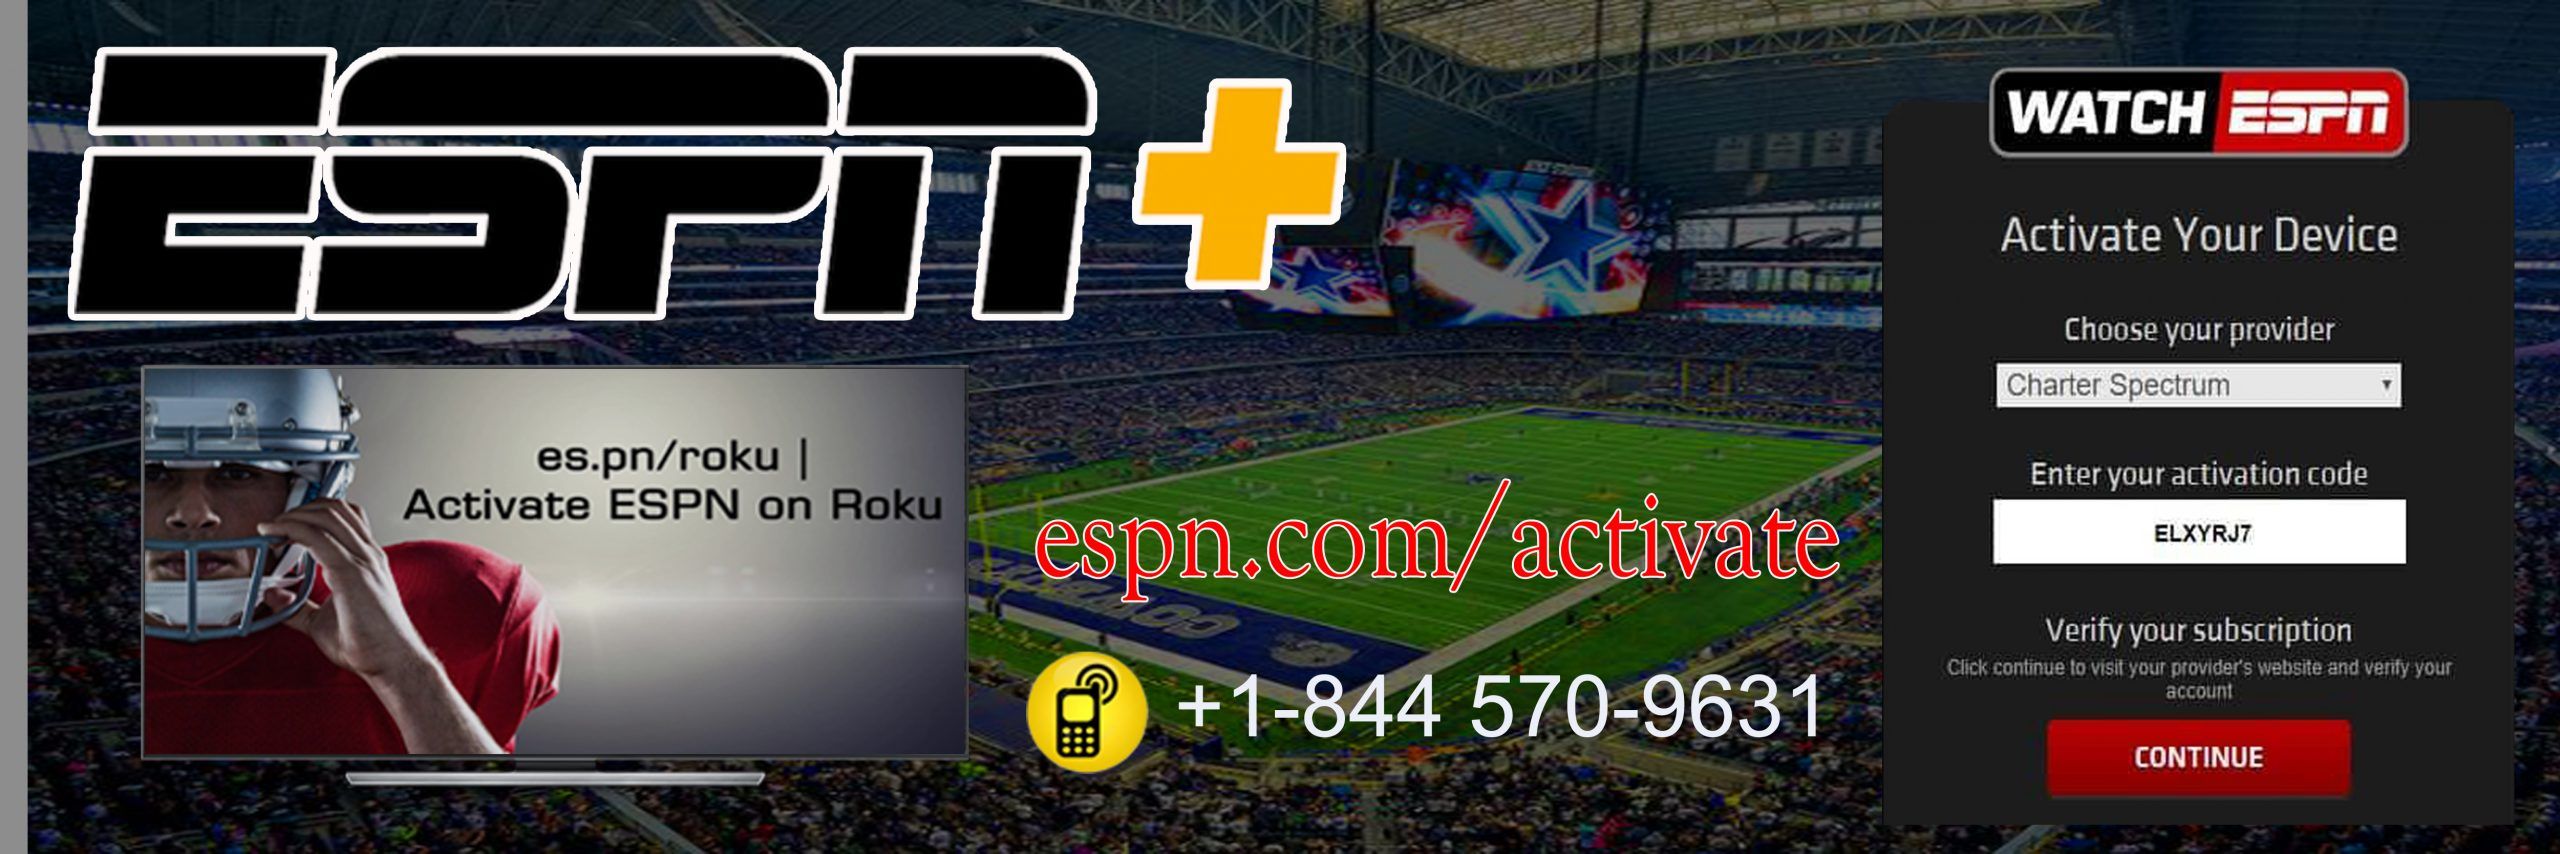 Espn.com/activate - Activate Espn And Espn plus On Roku And TV